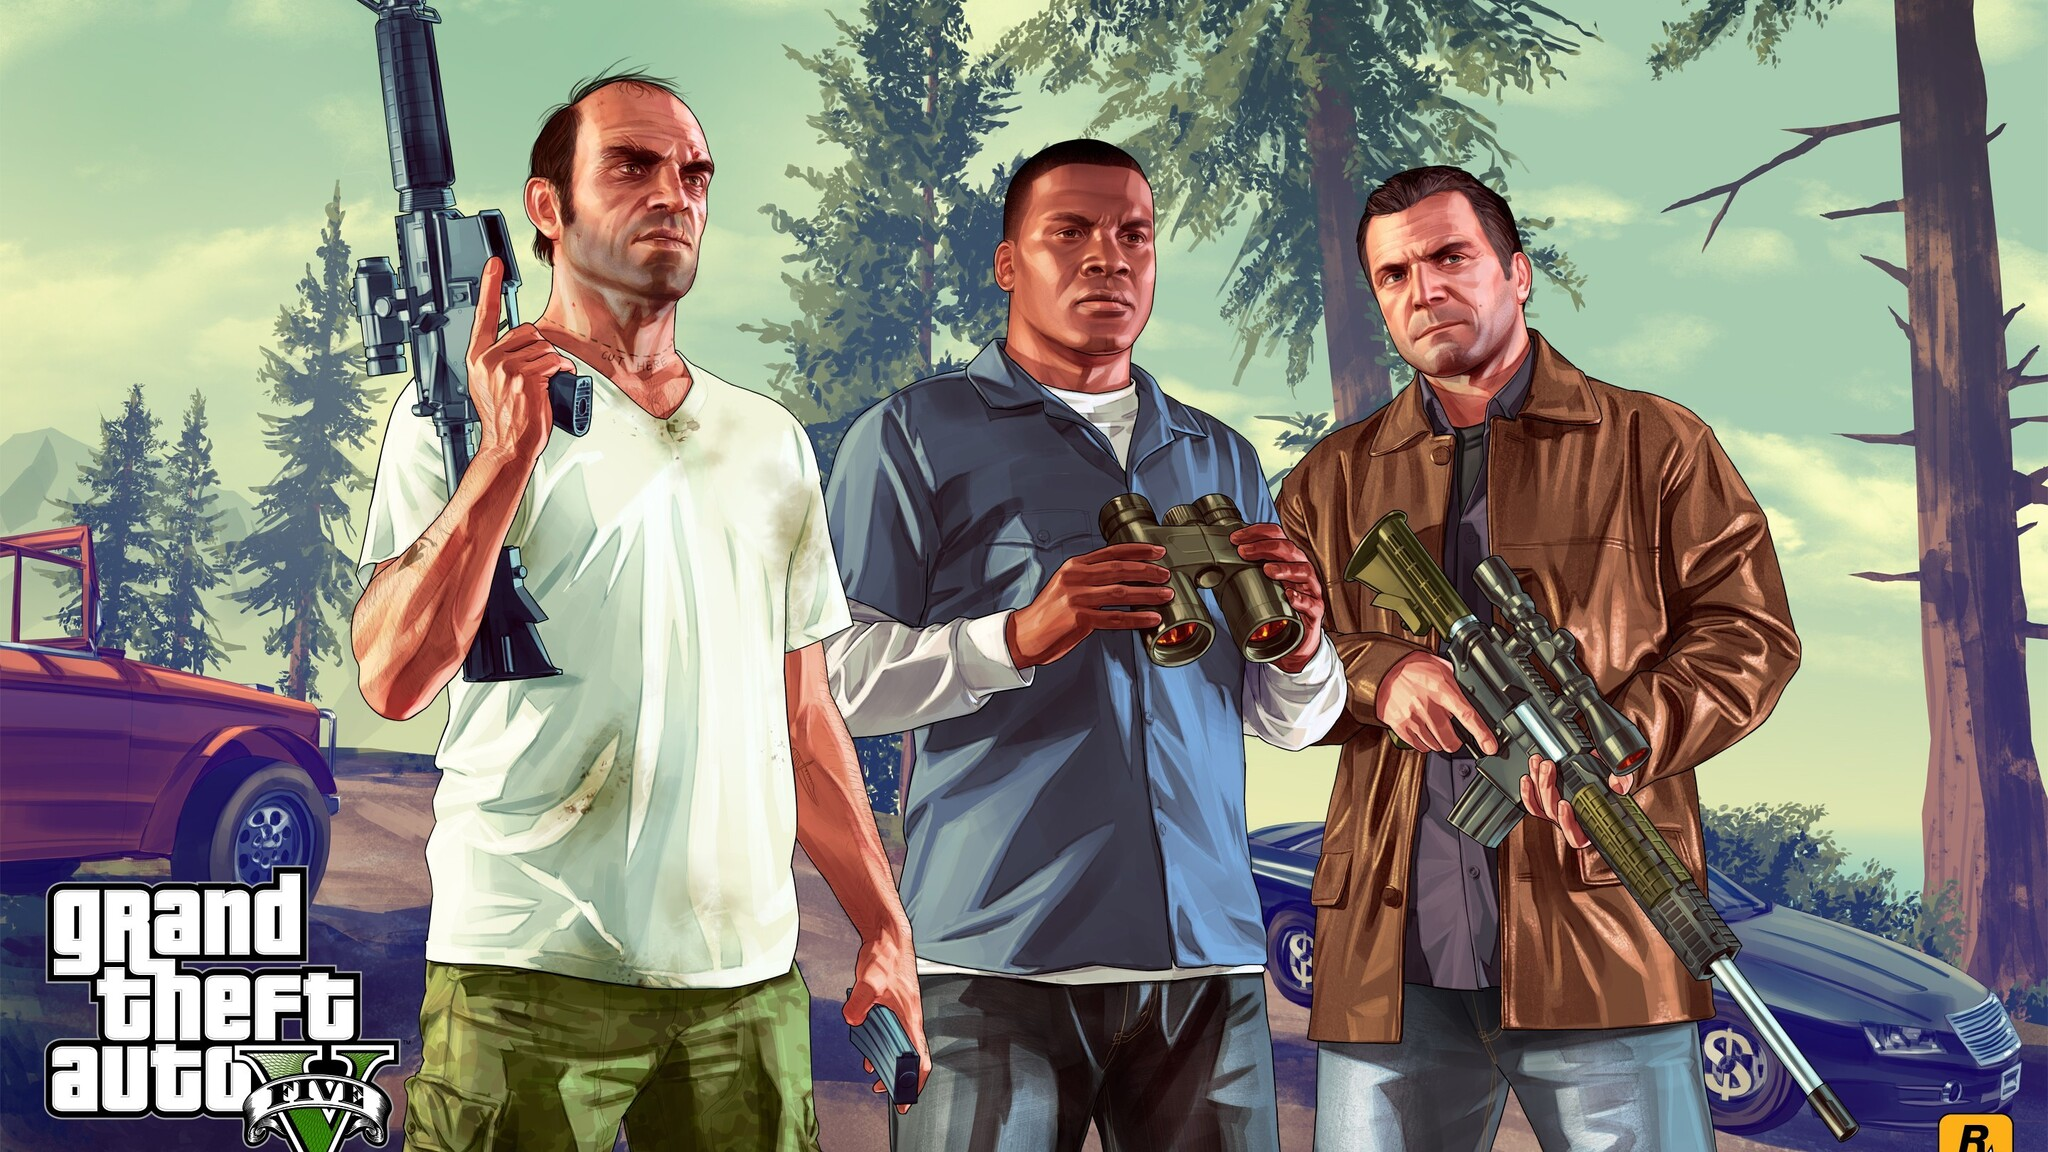 gta-5-game-wallpaper.jpg